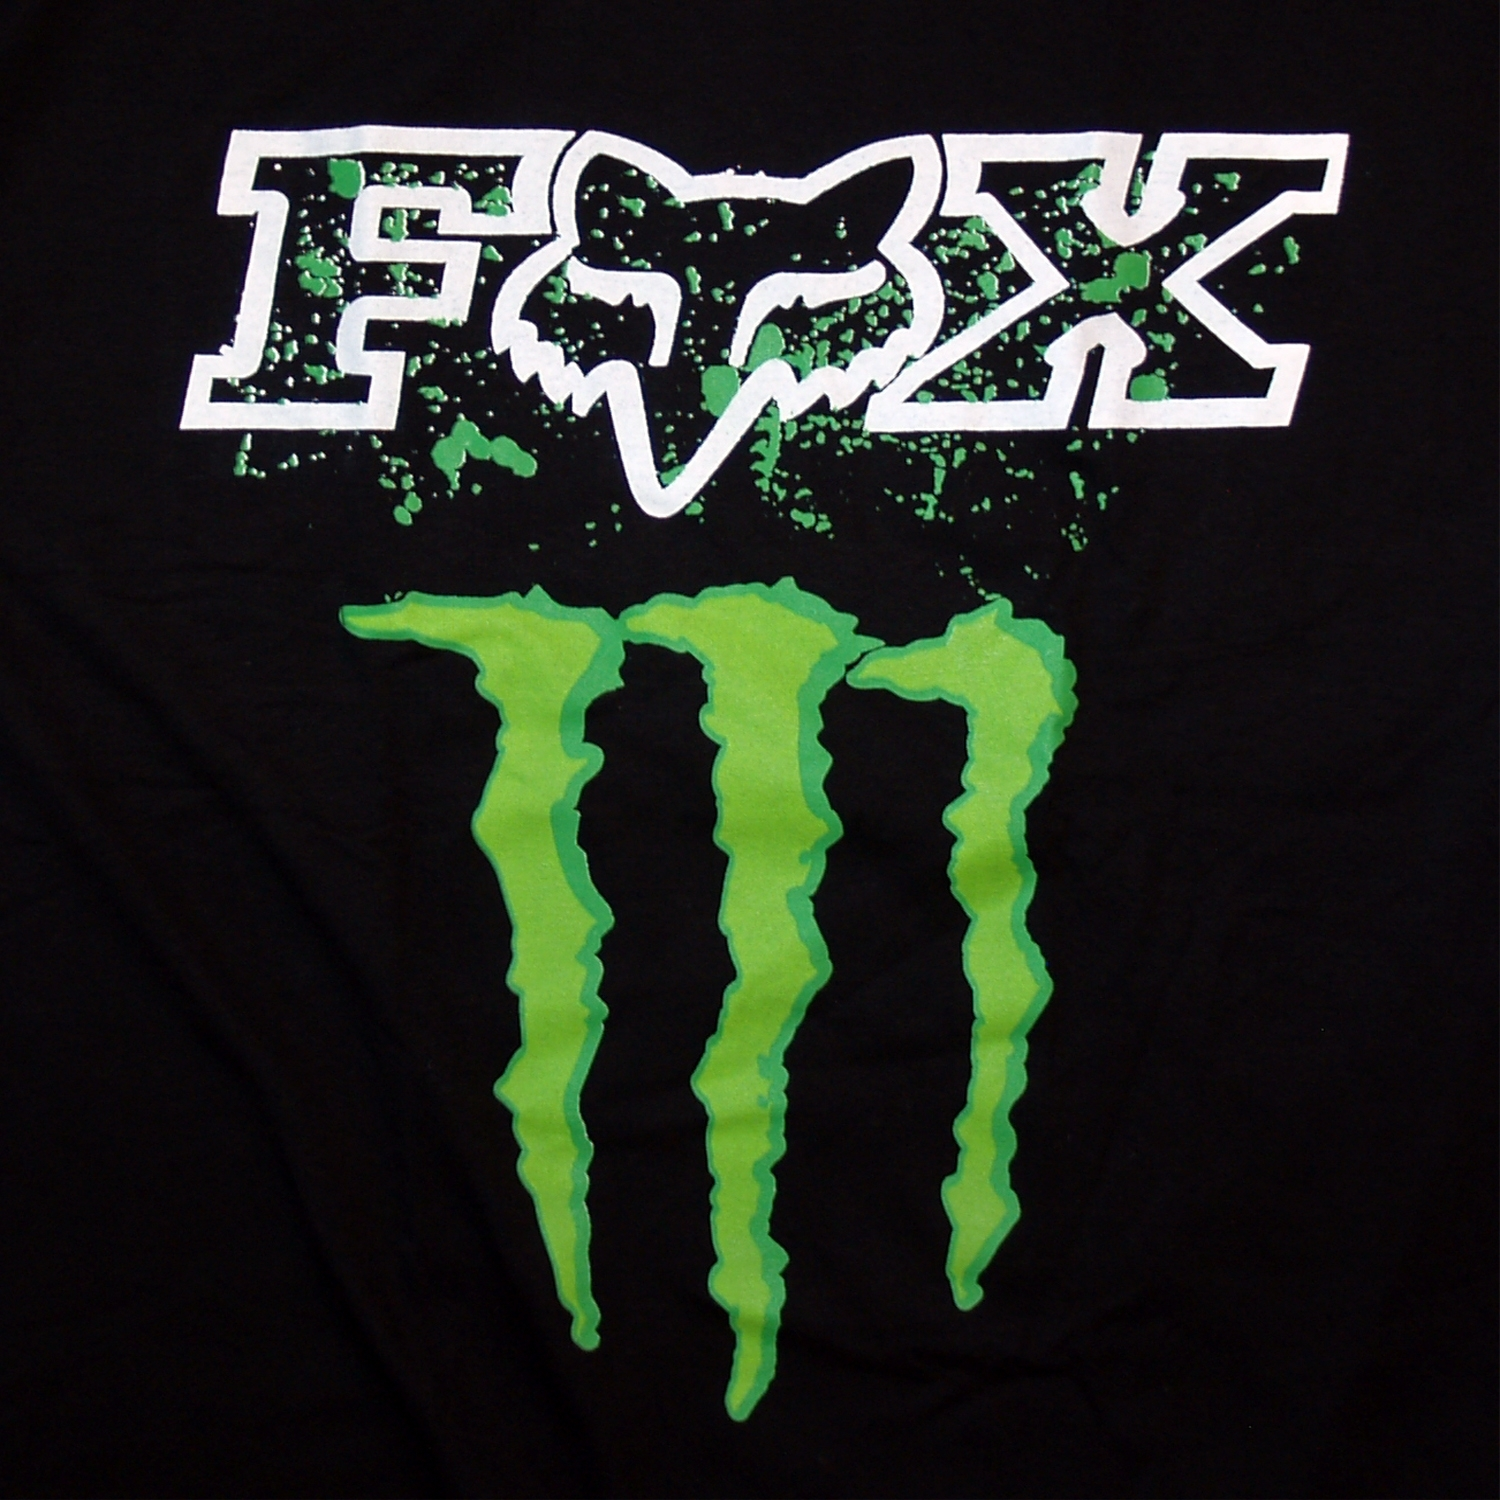 monster and fox pictures | monster fox imagen dc monster fox fondo